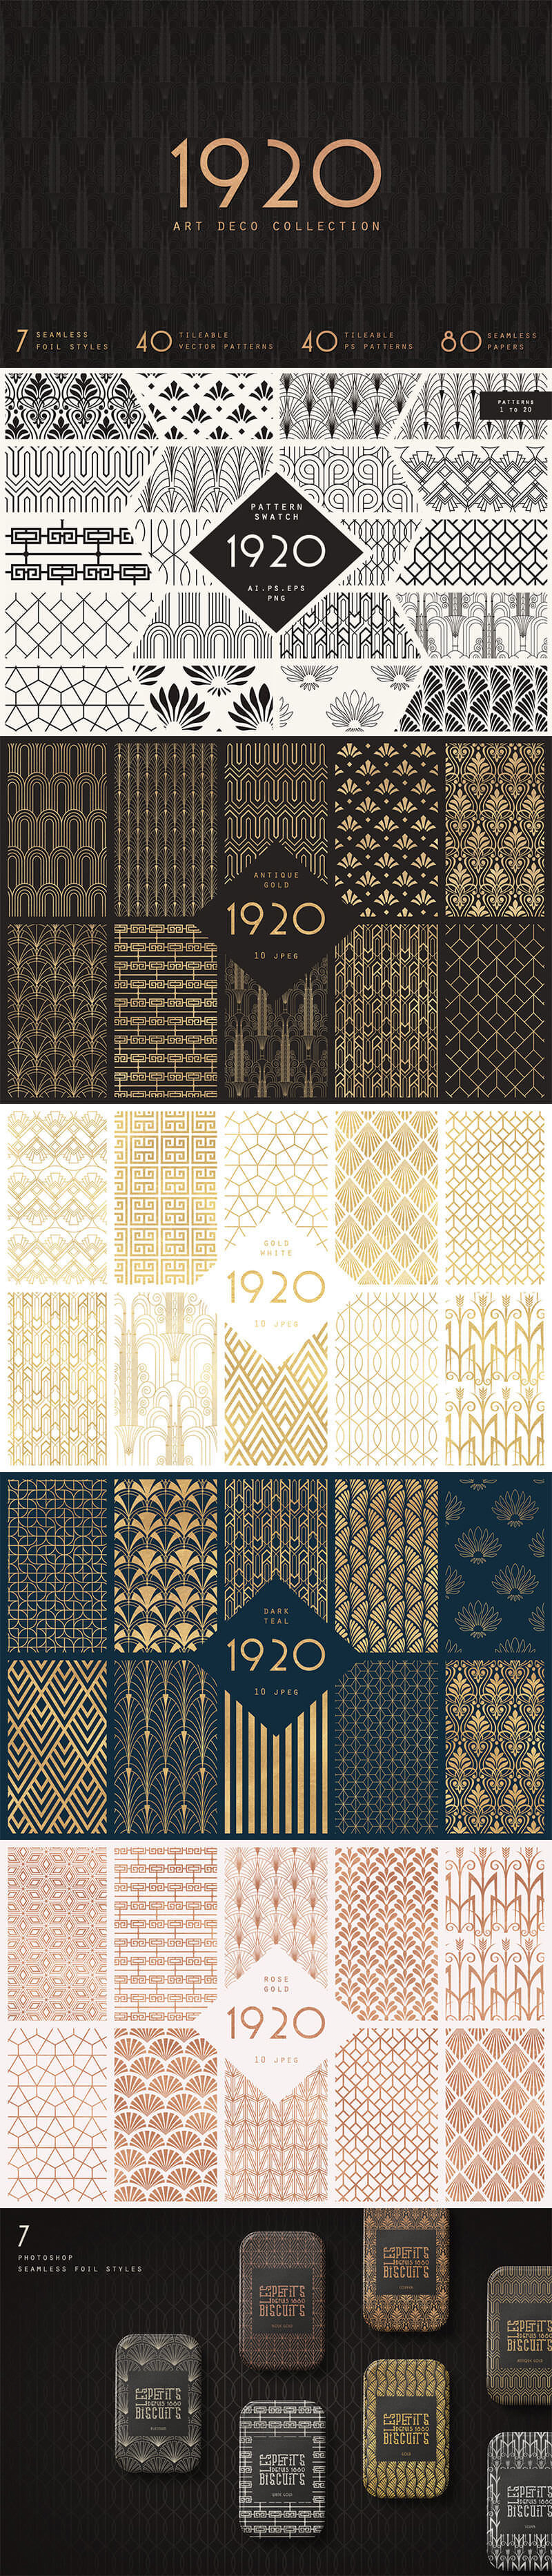 1920-Art-Deco-Seamless-Patterns-cover